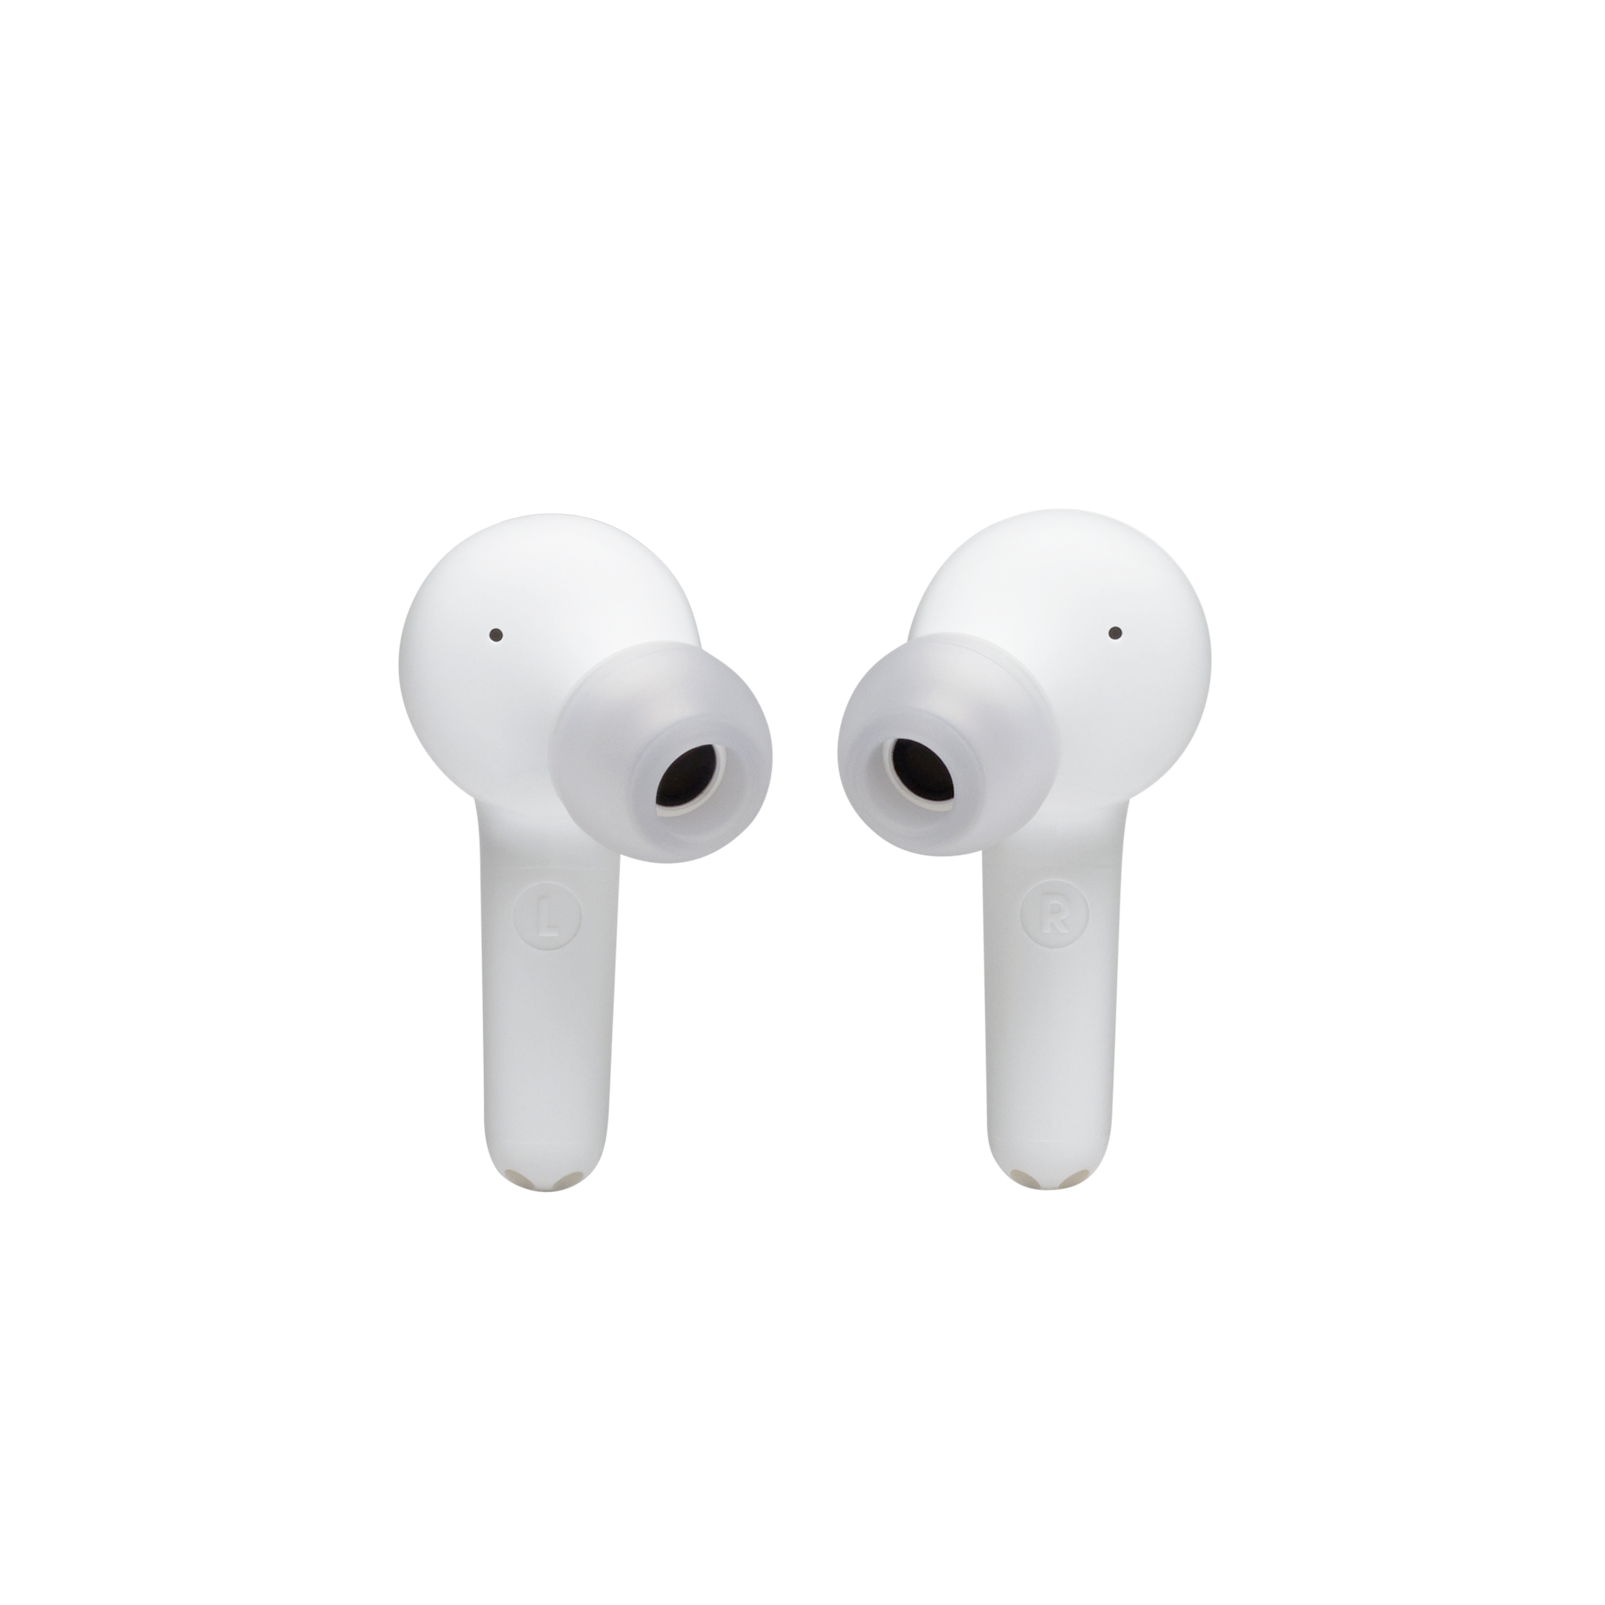 JBL Tune 215TWS - White - True wireless earbud headphones - Detailshot 1